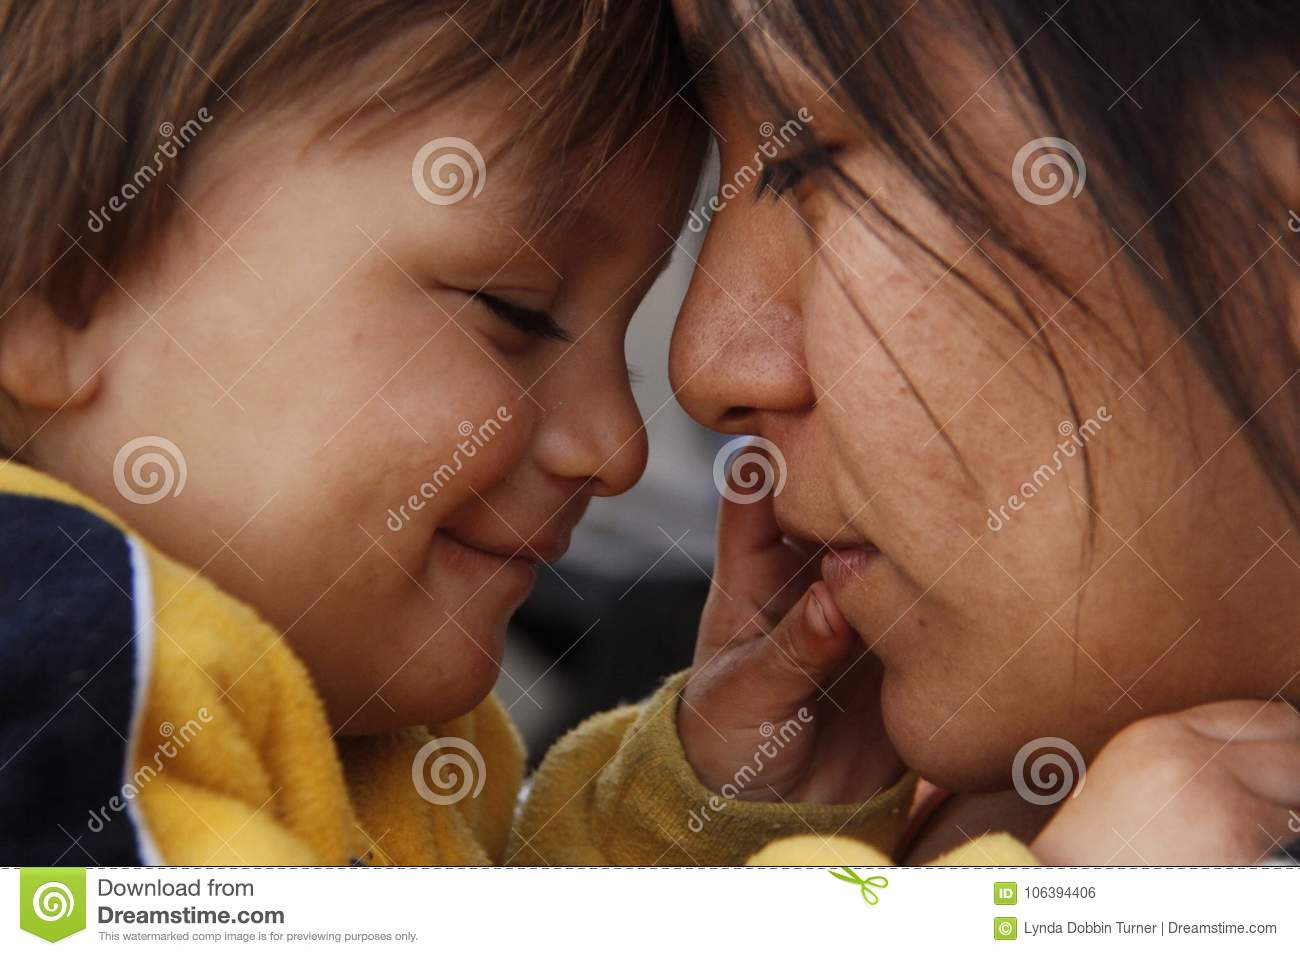 Love between mother and child